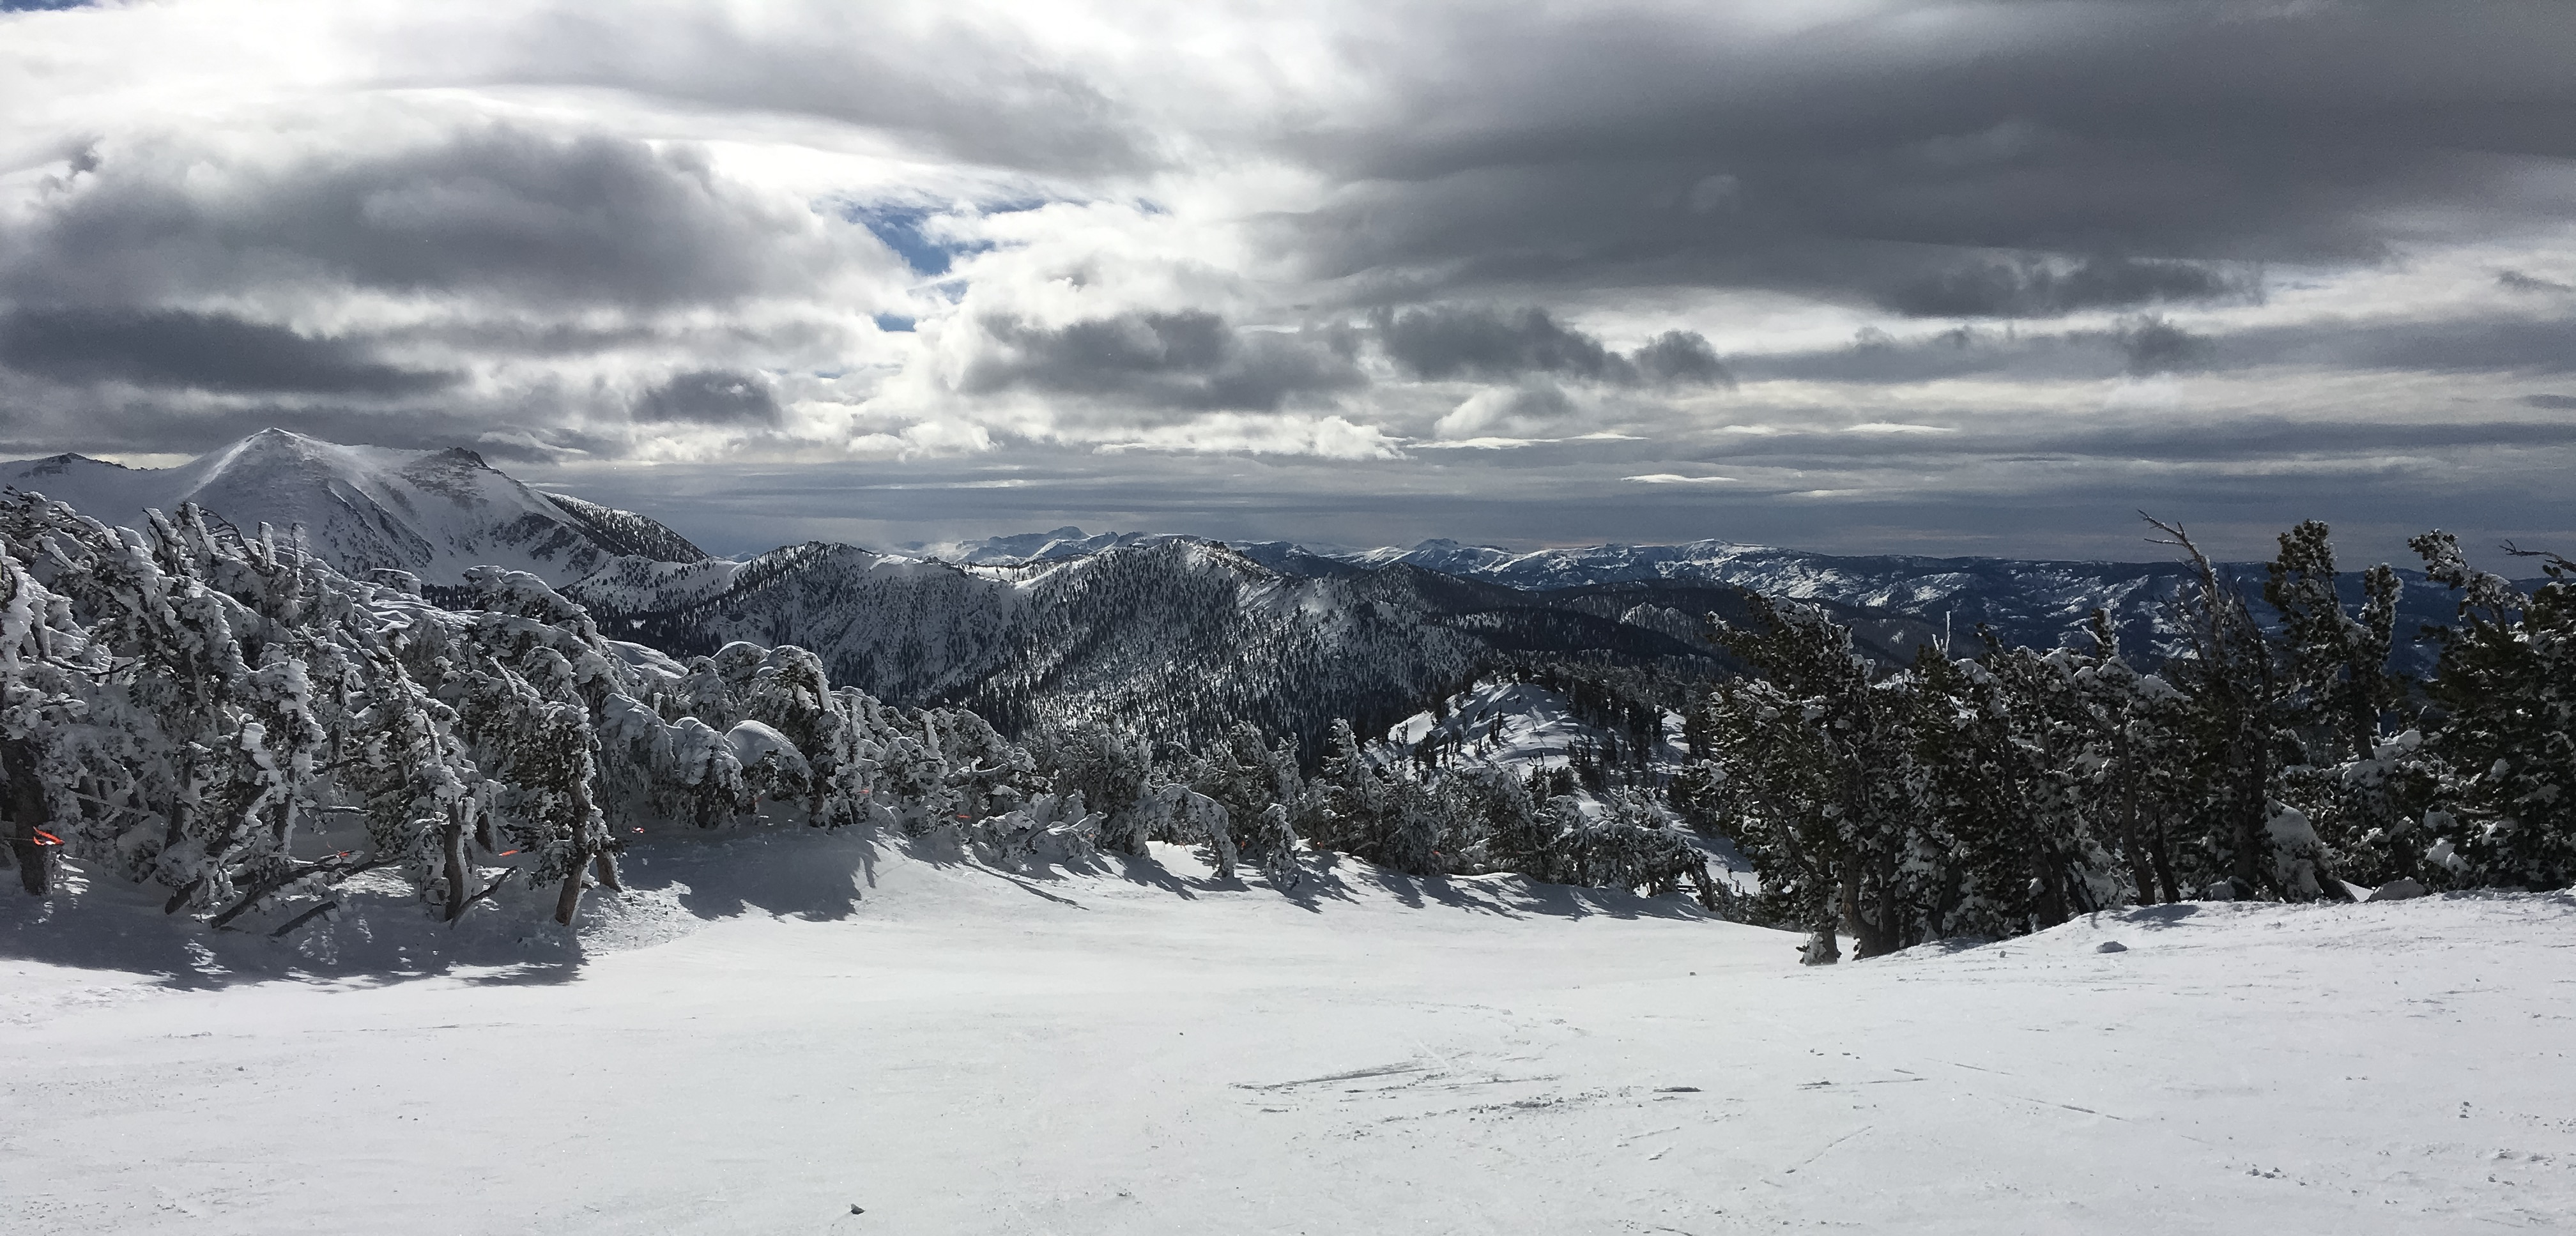 interactive sierra snowpack highs and lows over 13 years